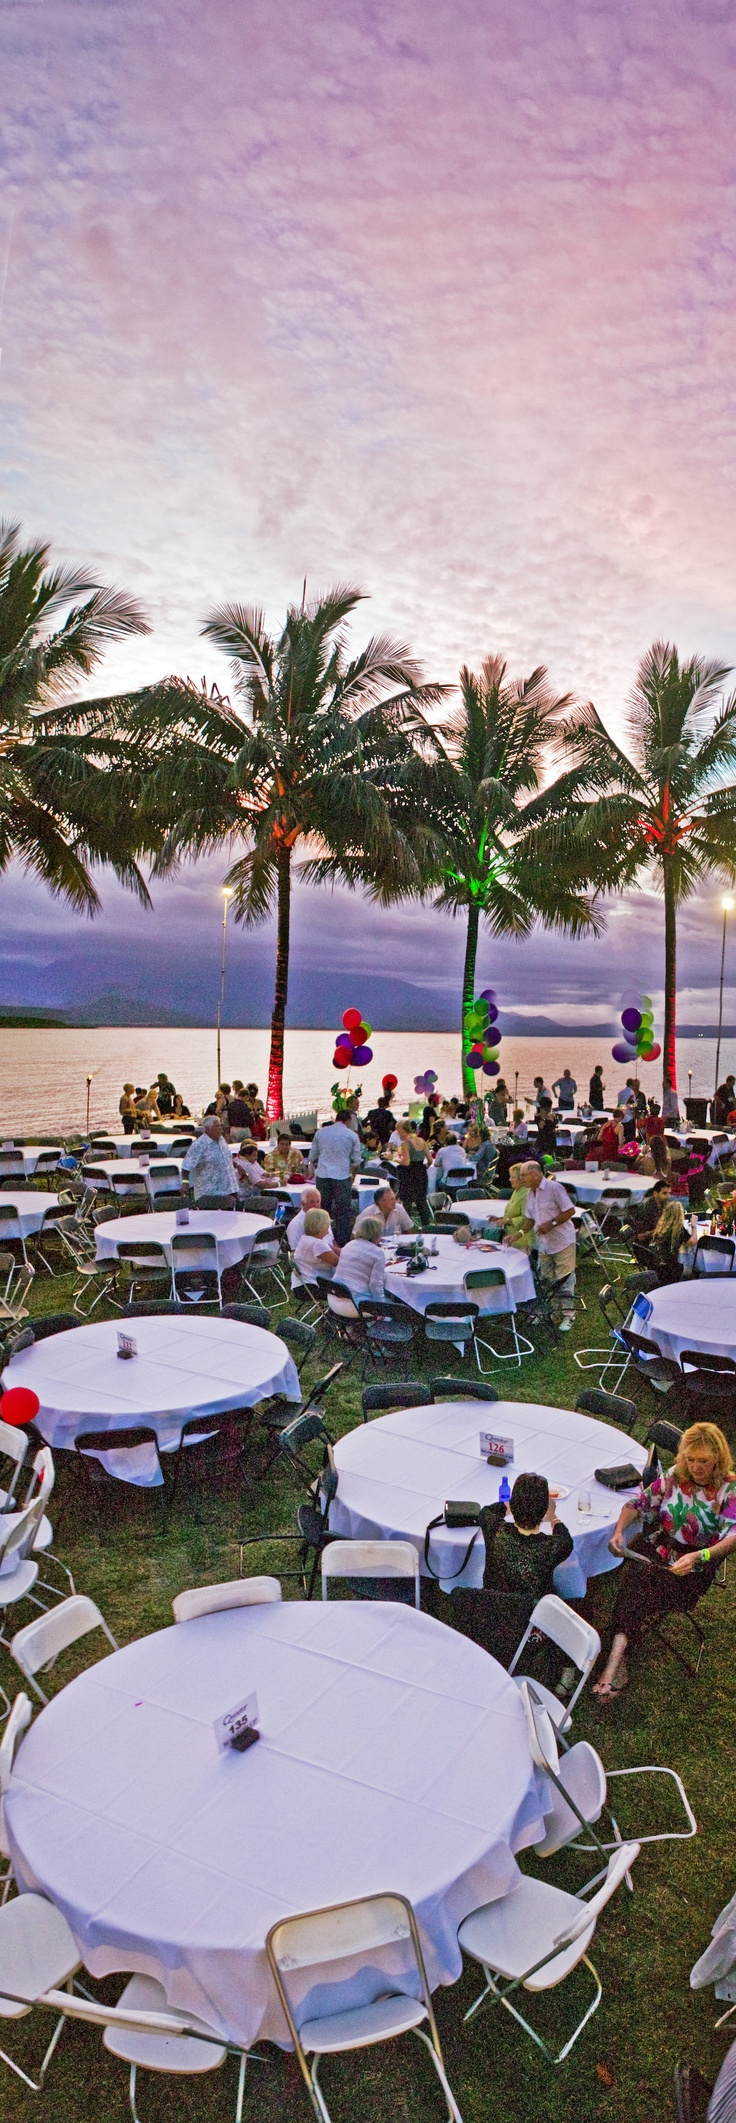 Carnivale Port Douglas, held every May. #portdouglas - If you have not been - put on bucket list......